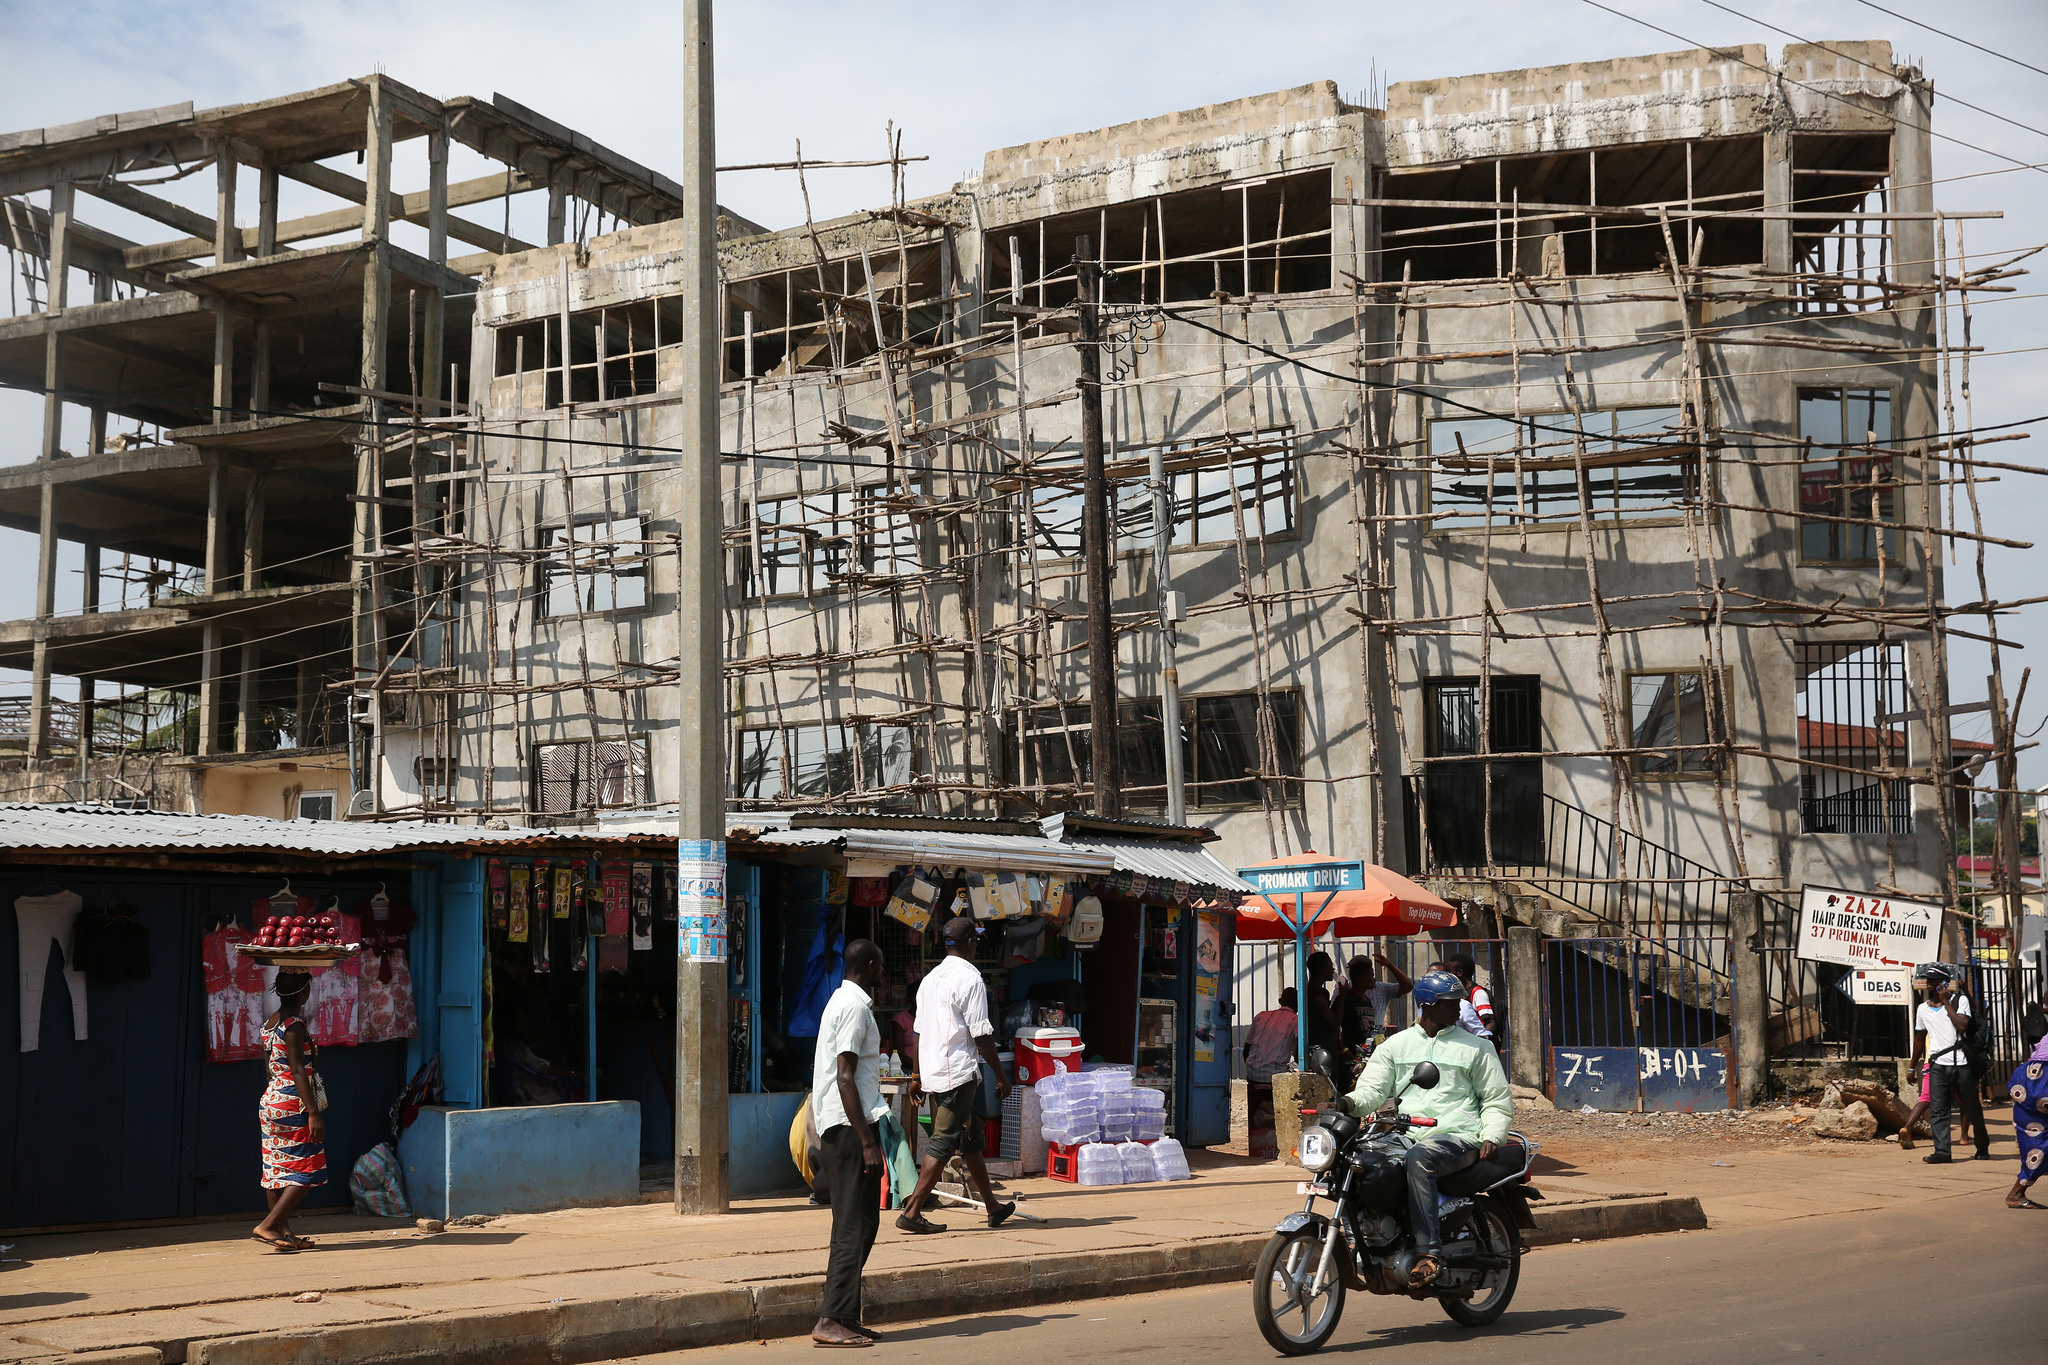 Daily life in Conakry, Guinea on December 3, 2014.    Source   : Dominic Chavez / World Bank via Flickr